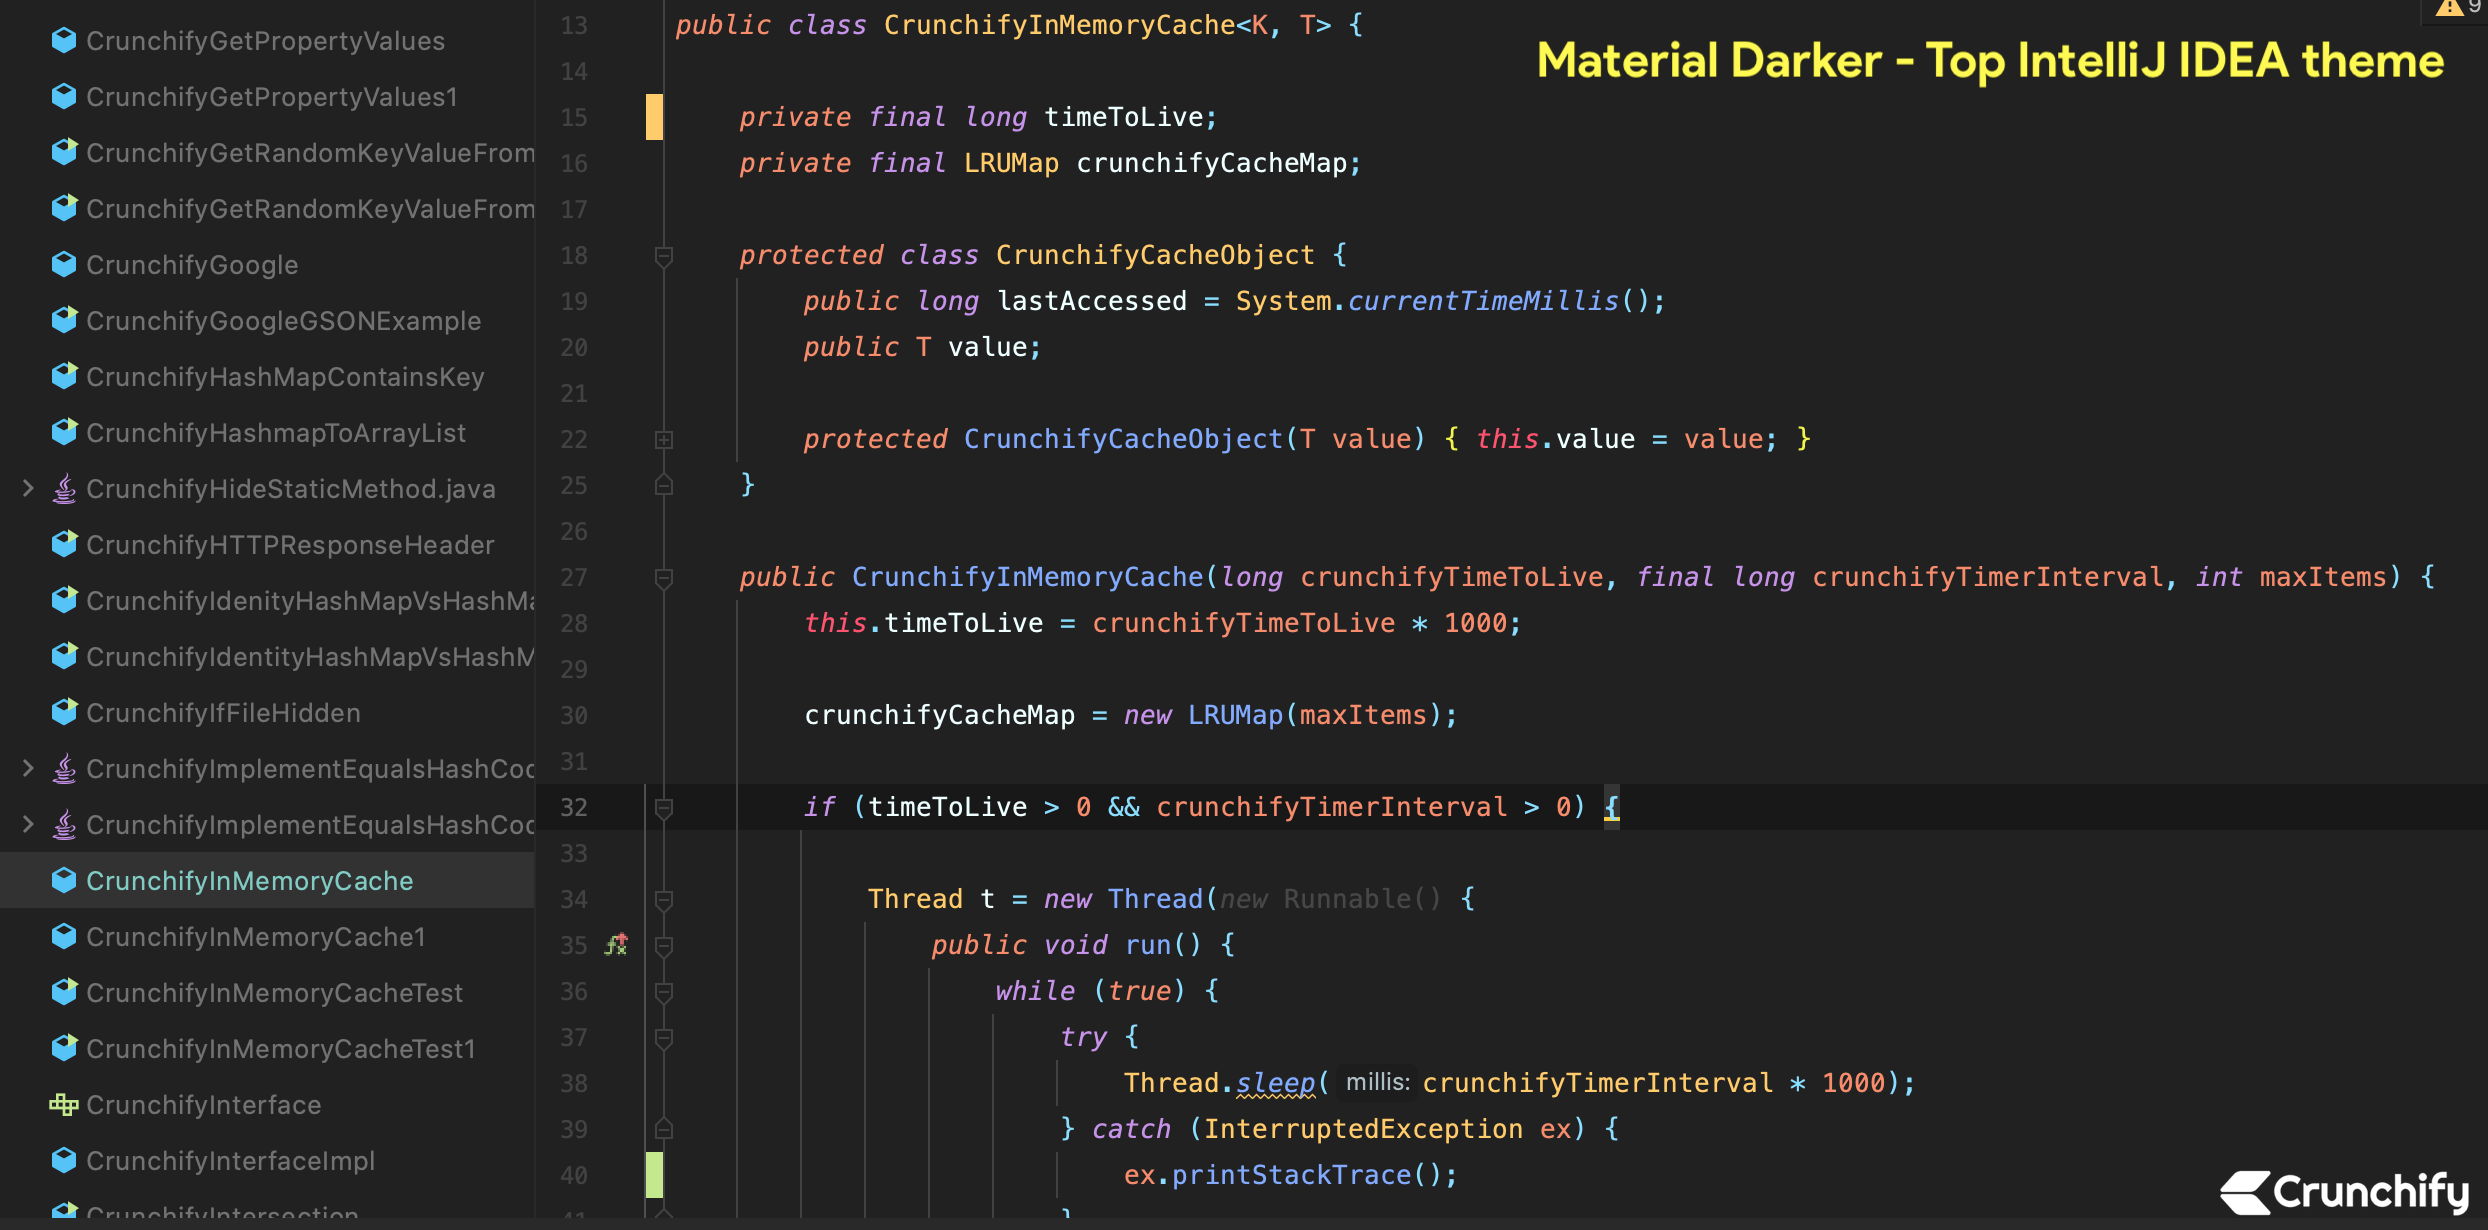 Top IntelliJ IDEA theme - material darker theme